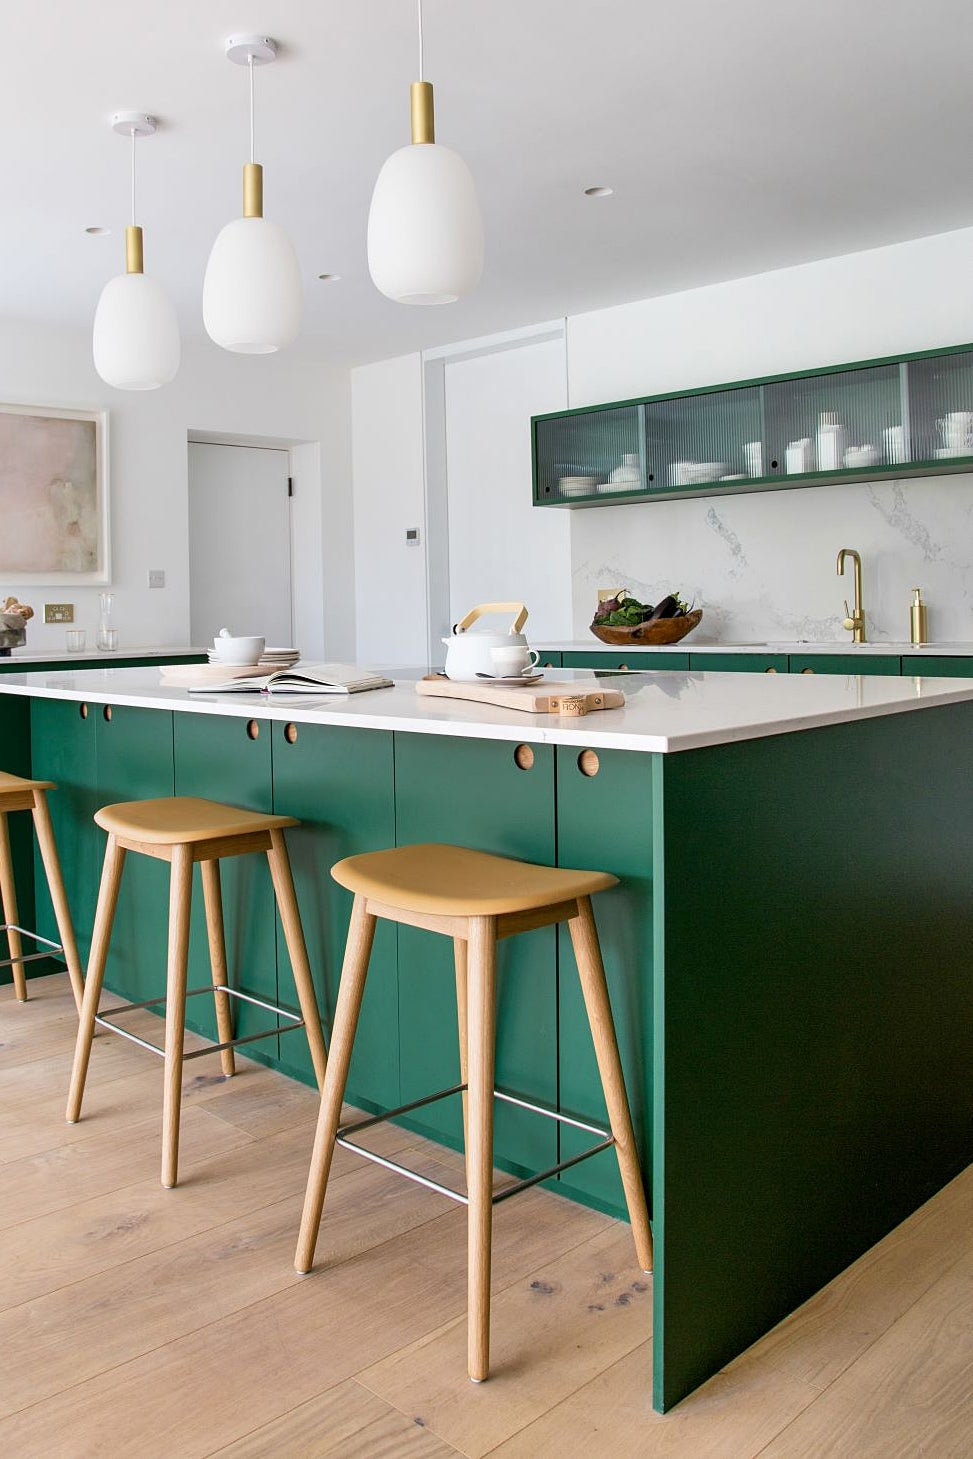 6 Glass Kitchen Cabinets For Every Kind Of Style